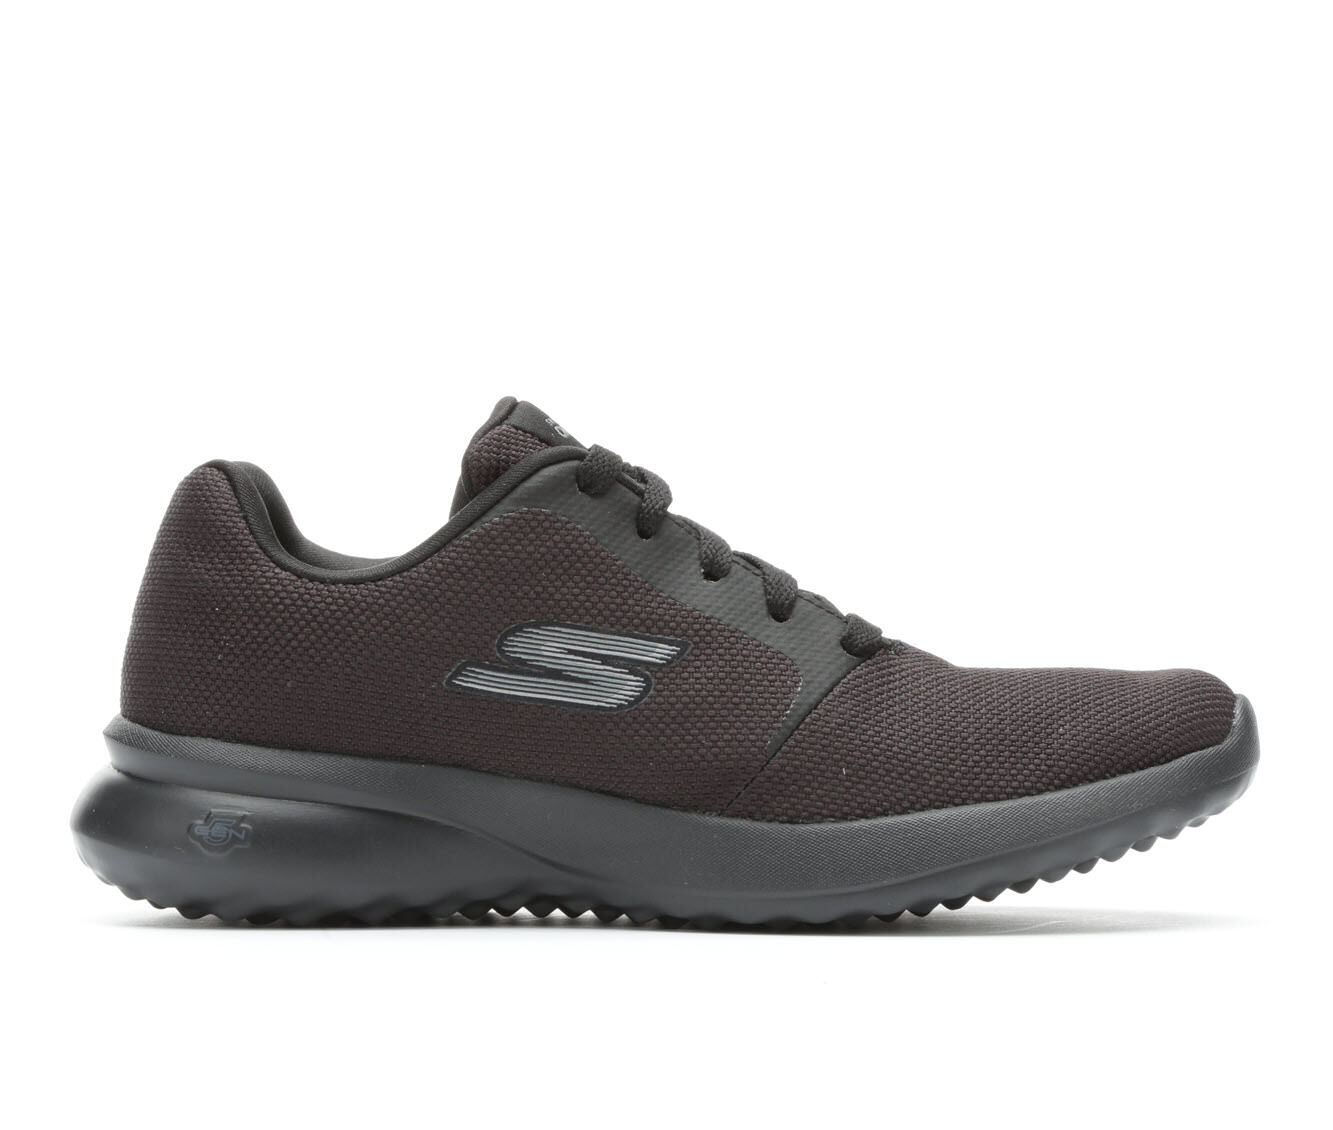 how much sale online Women's Skechers Go City 3 Optimize 14772 Walking Shoes clearance 100% authentic discount footlocker finishline X78s5D0